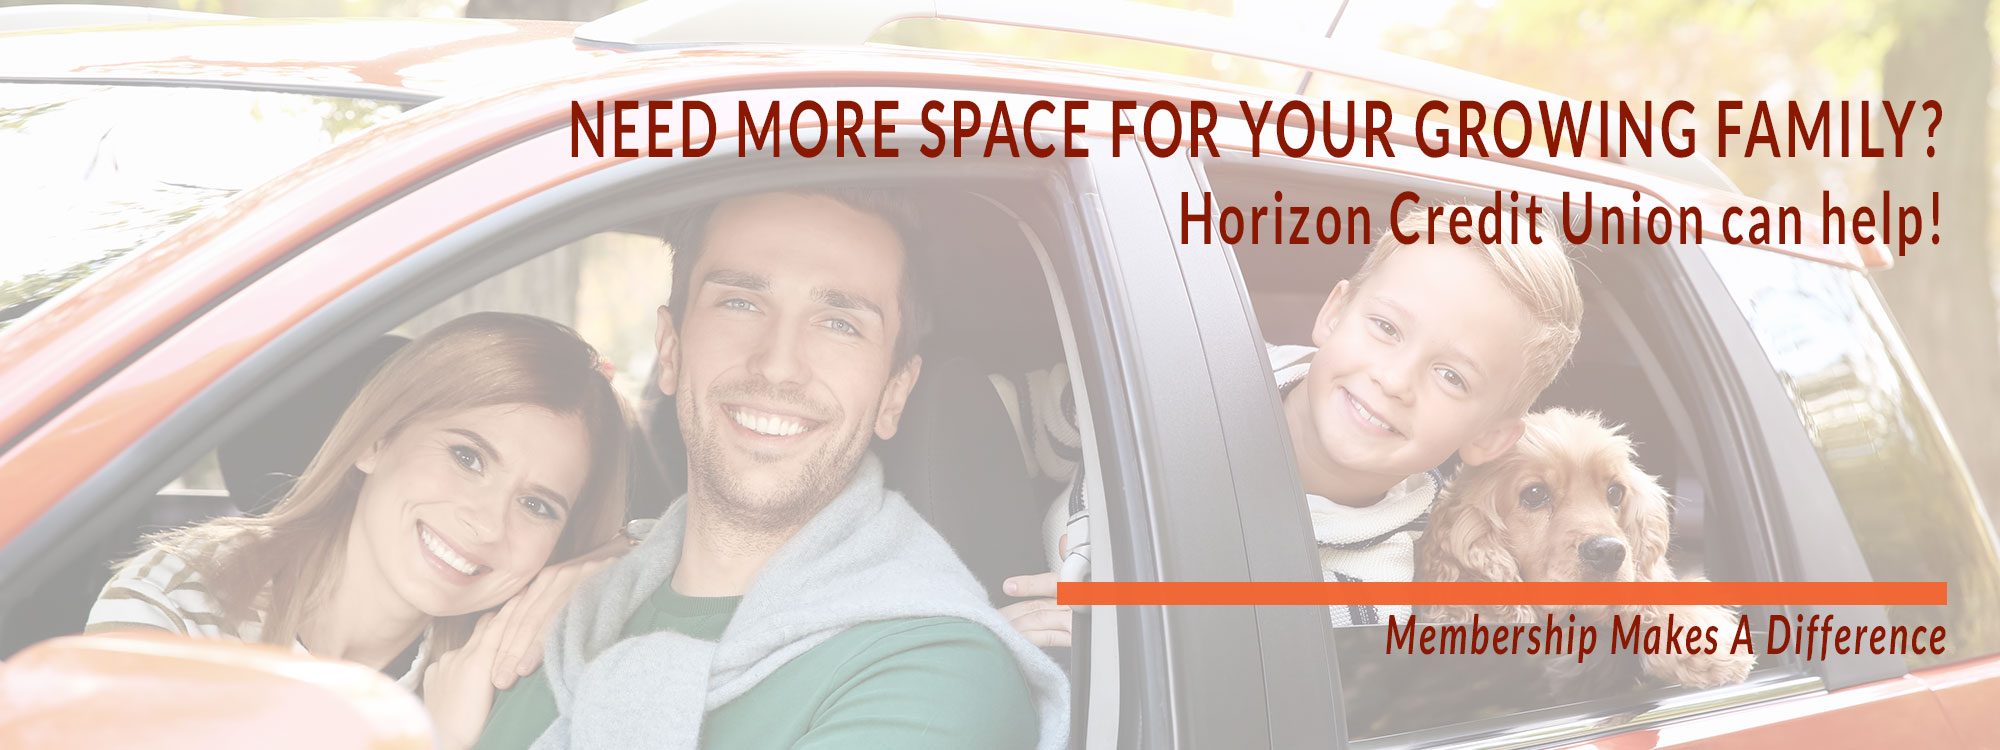 Need more space for your growing family? Horizon Credit Union can help! Membership Makes a Difference.